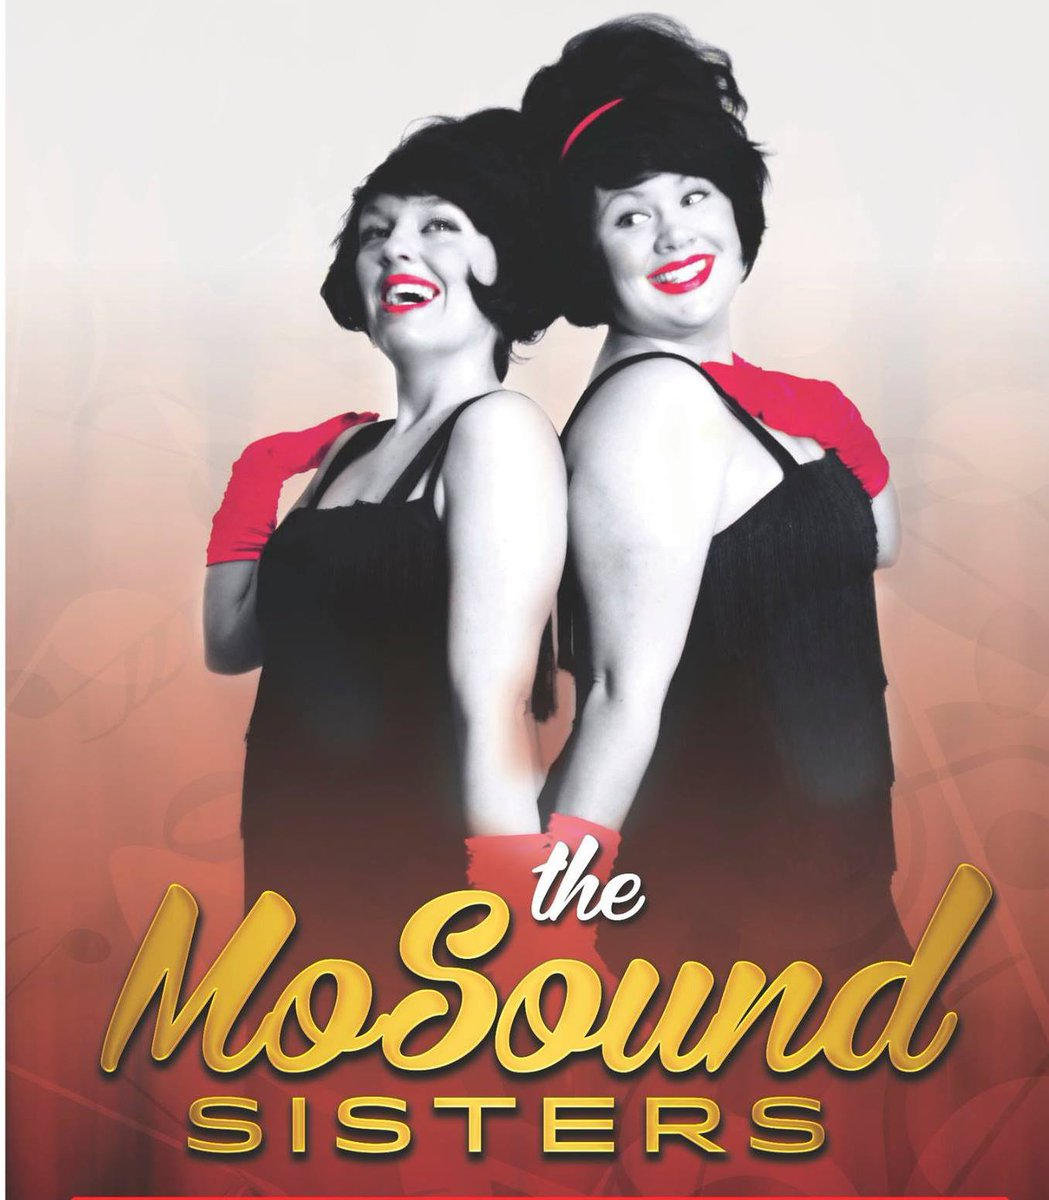 The Mosound Sisters Motown Tribute